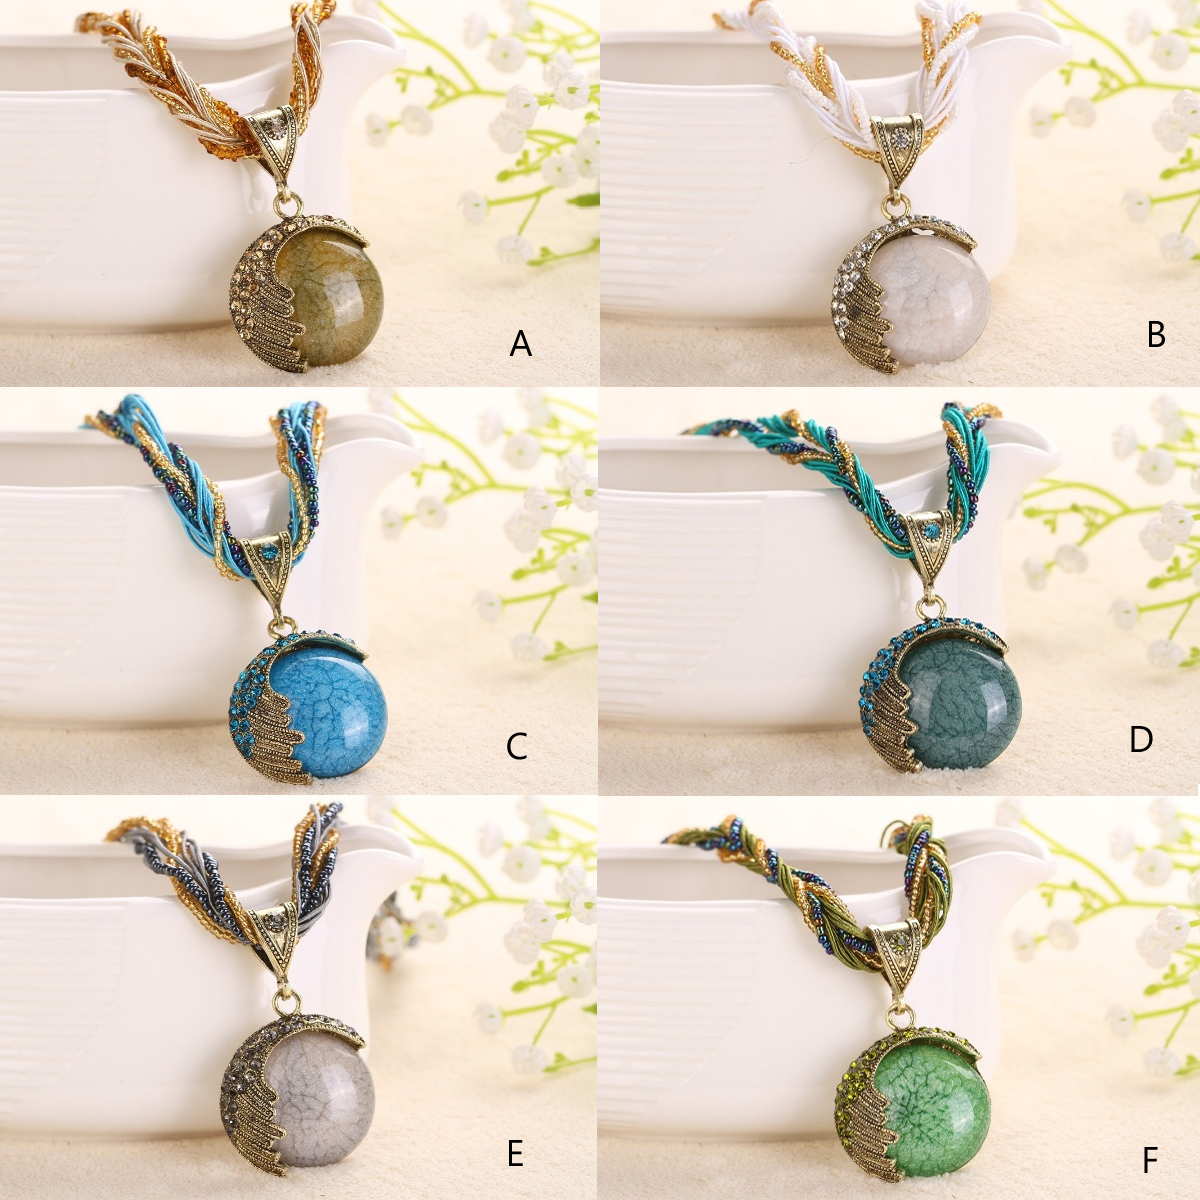 Love Rain Necklace Boho Vibe In 12 Shades - Color - A 57d876c42adf92576a3b5b79